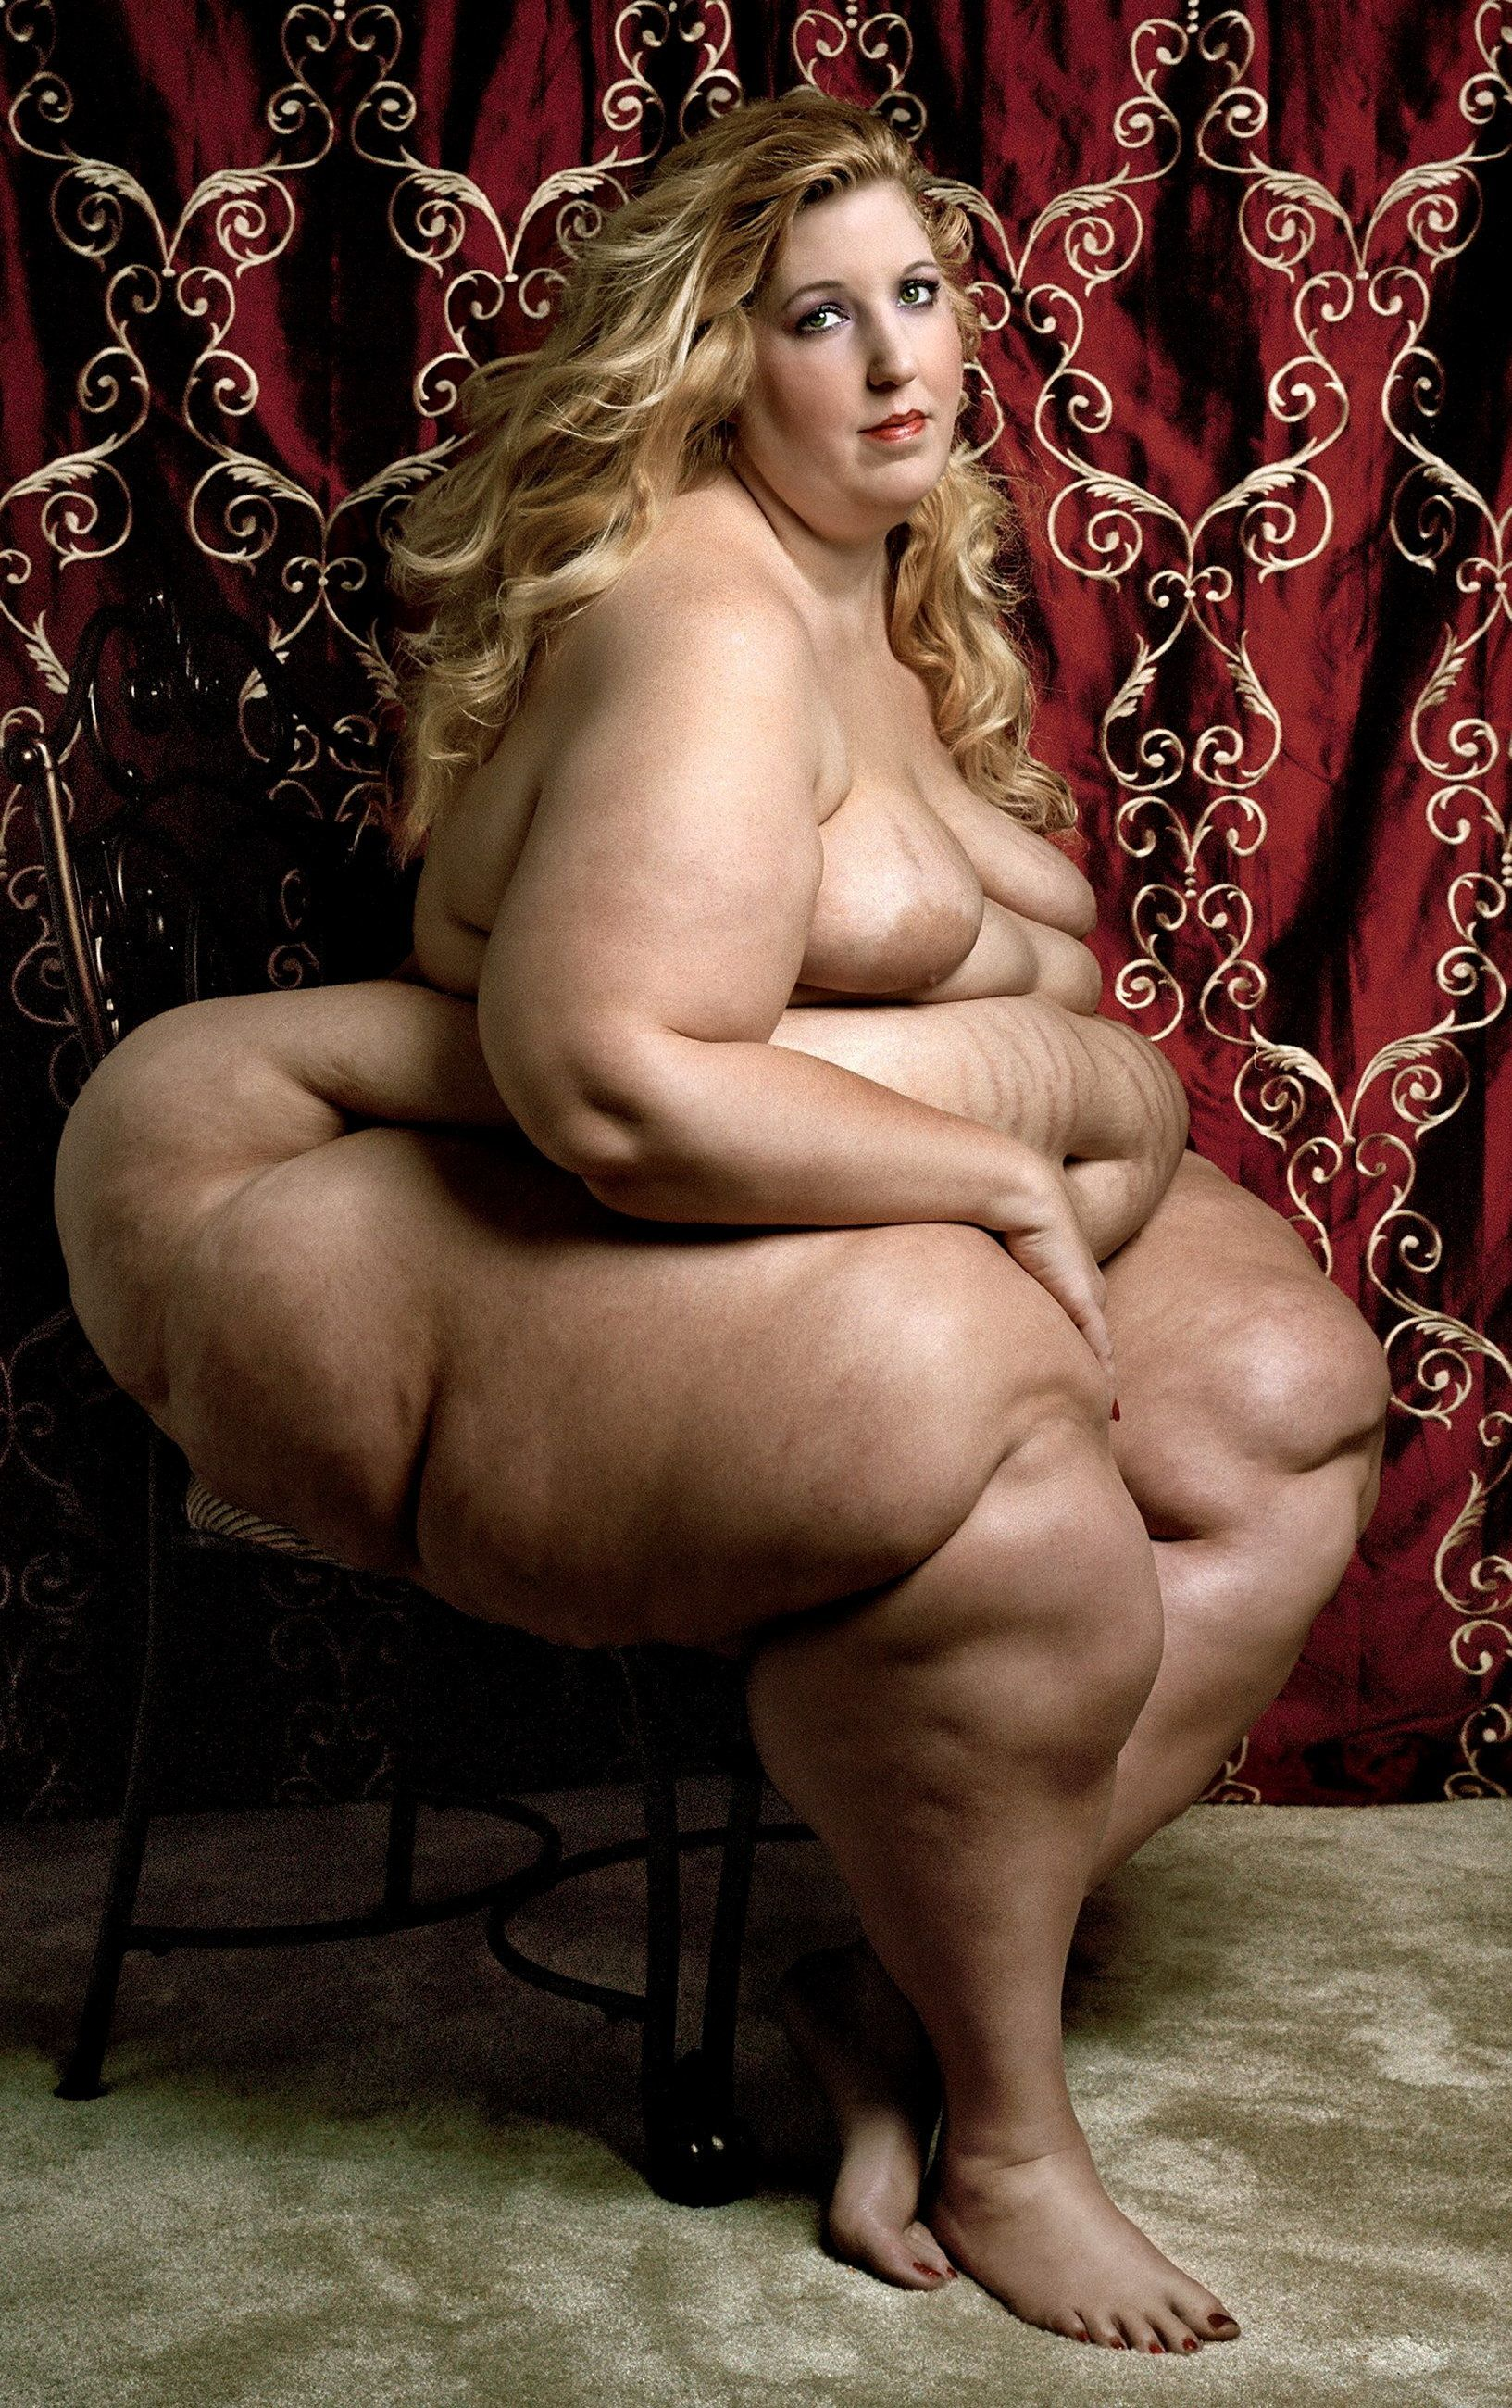 Naked obese woman